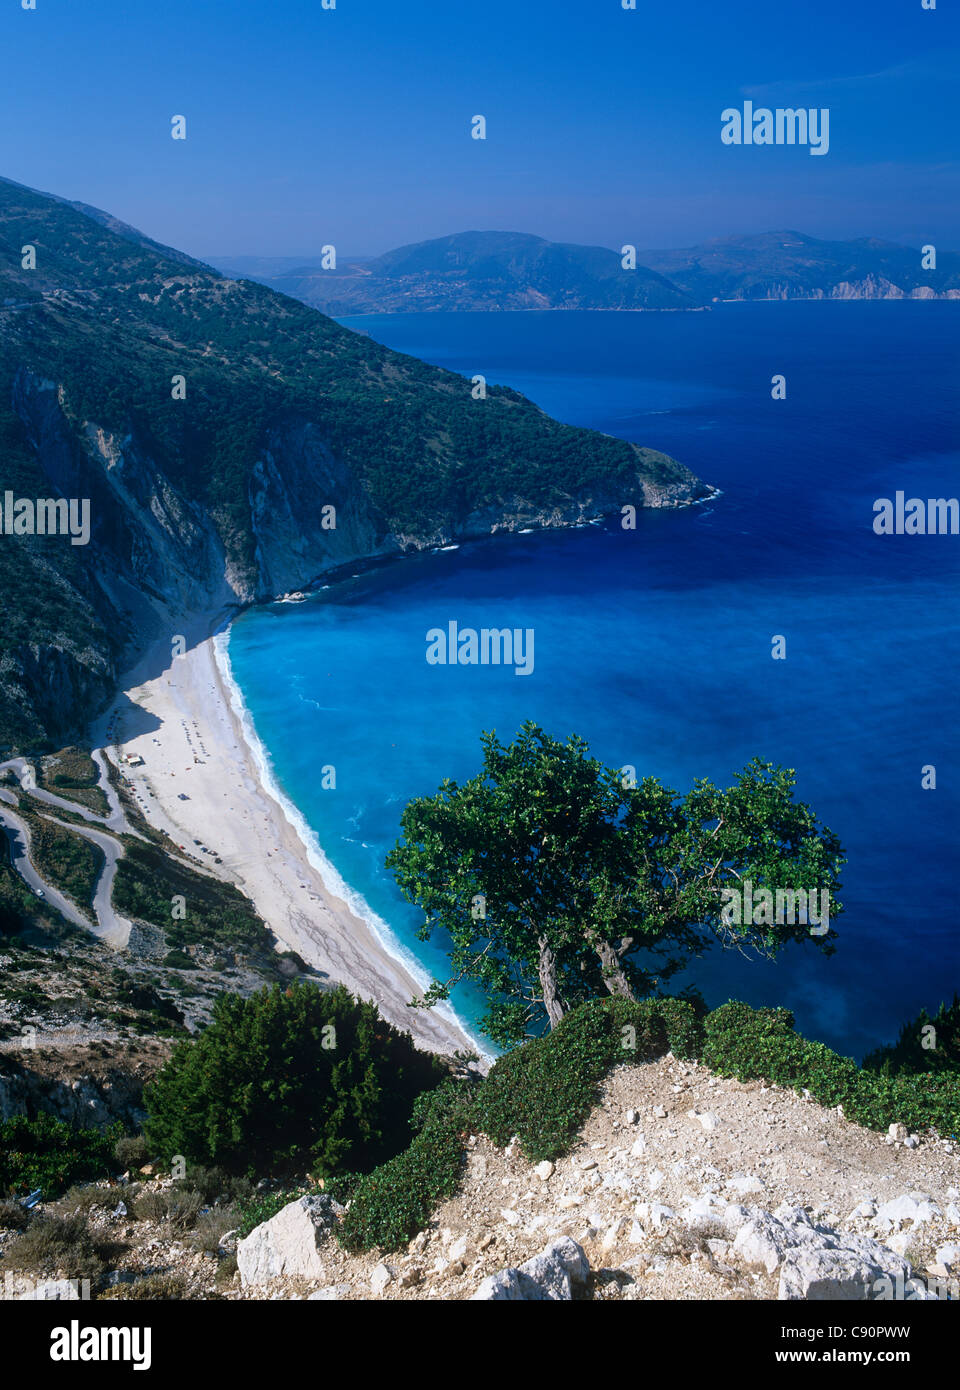 Myrtos beach is a long strand of sandy beach on the island of Cephalonia in a stunning landscape. Sami, Kefallonia, - Stock Image